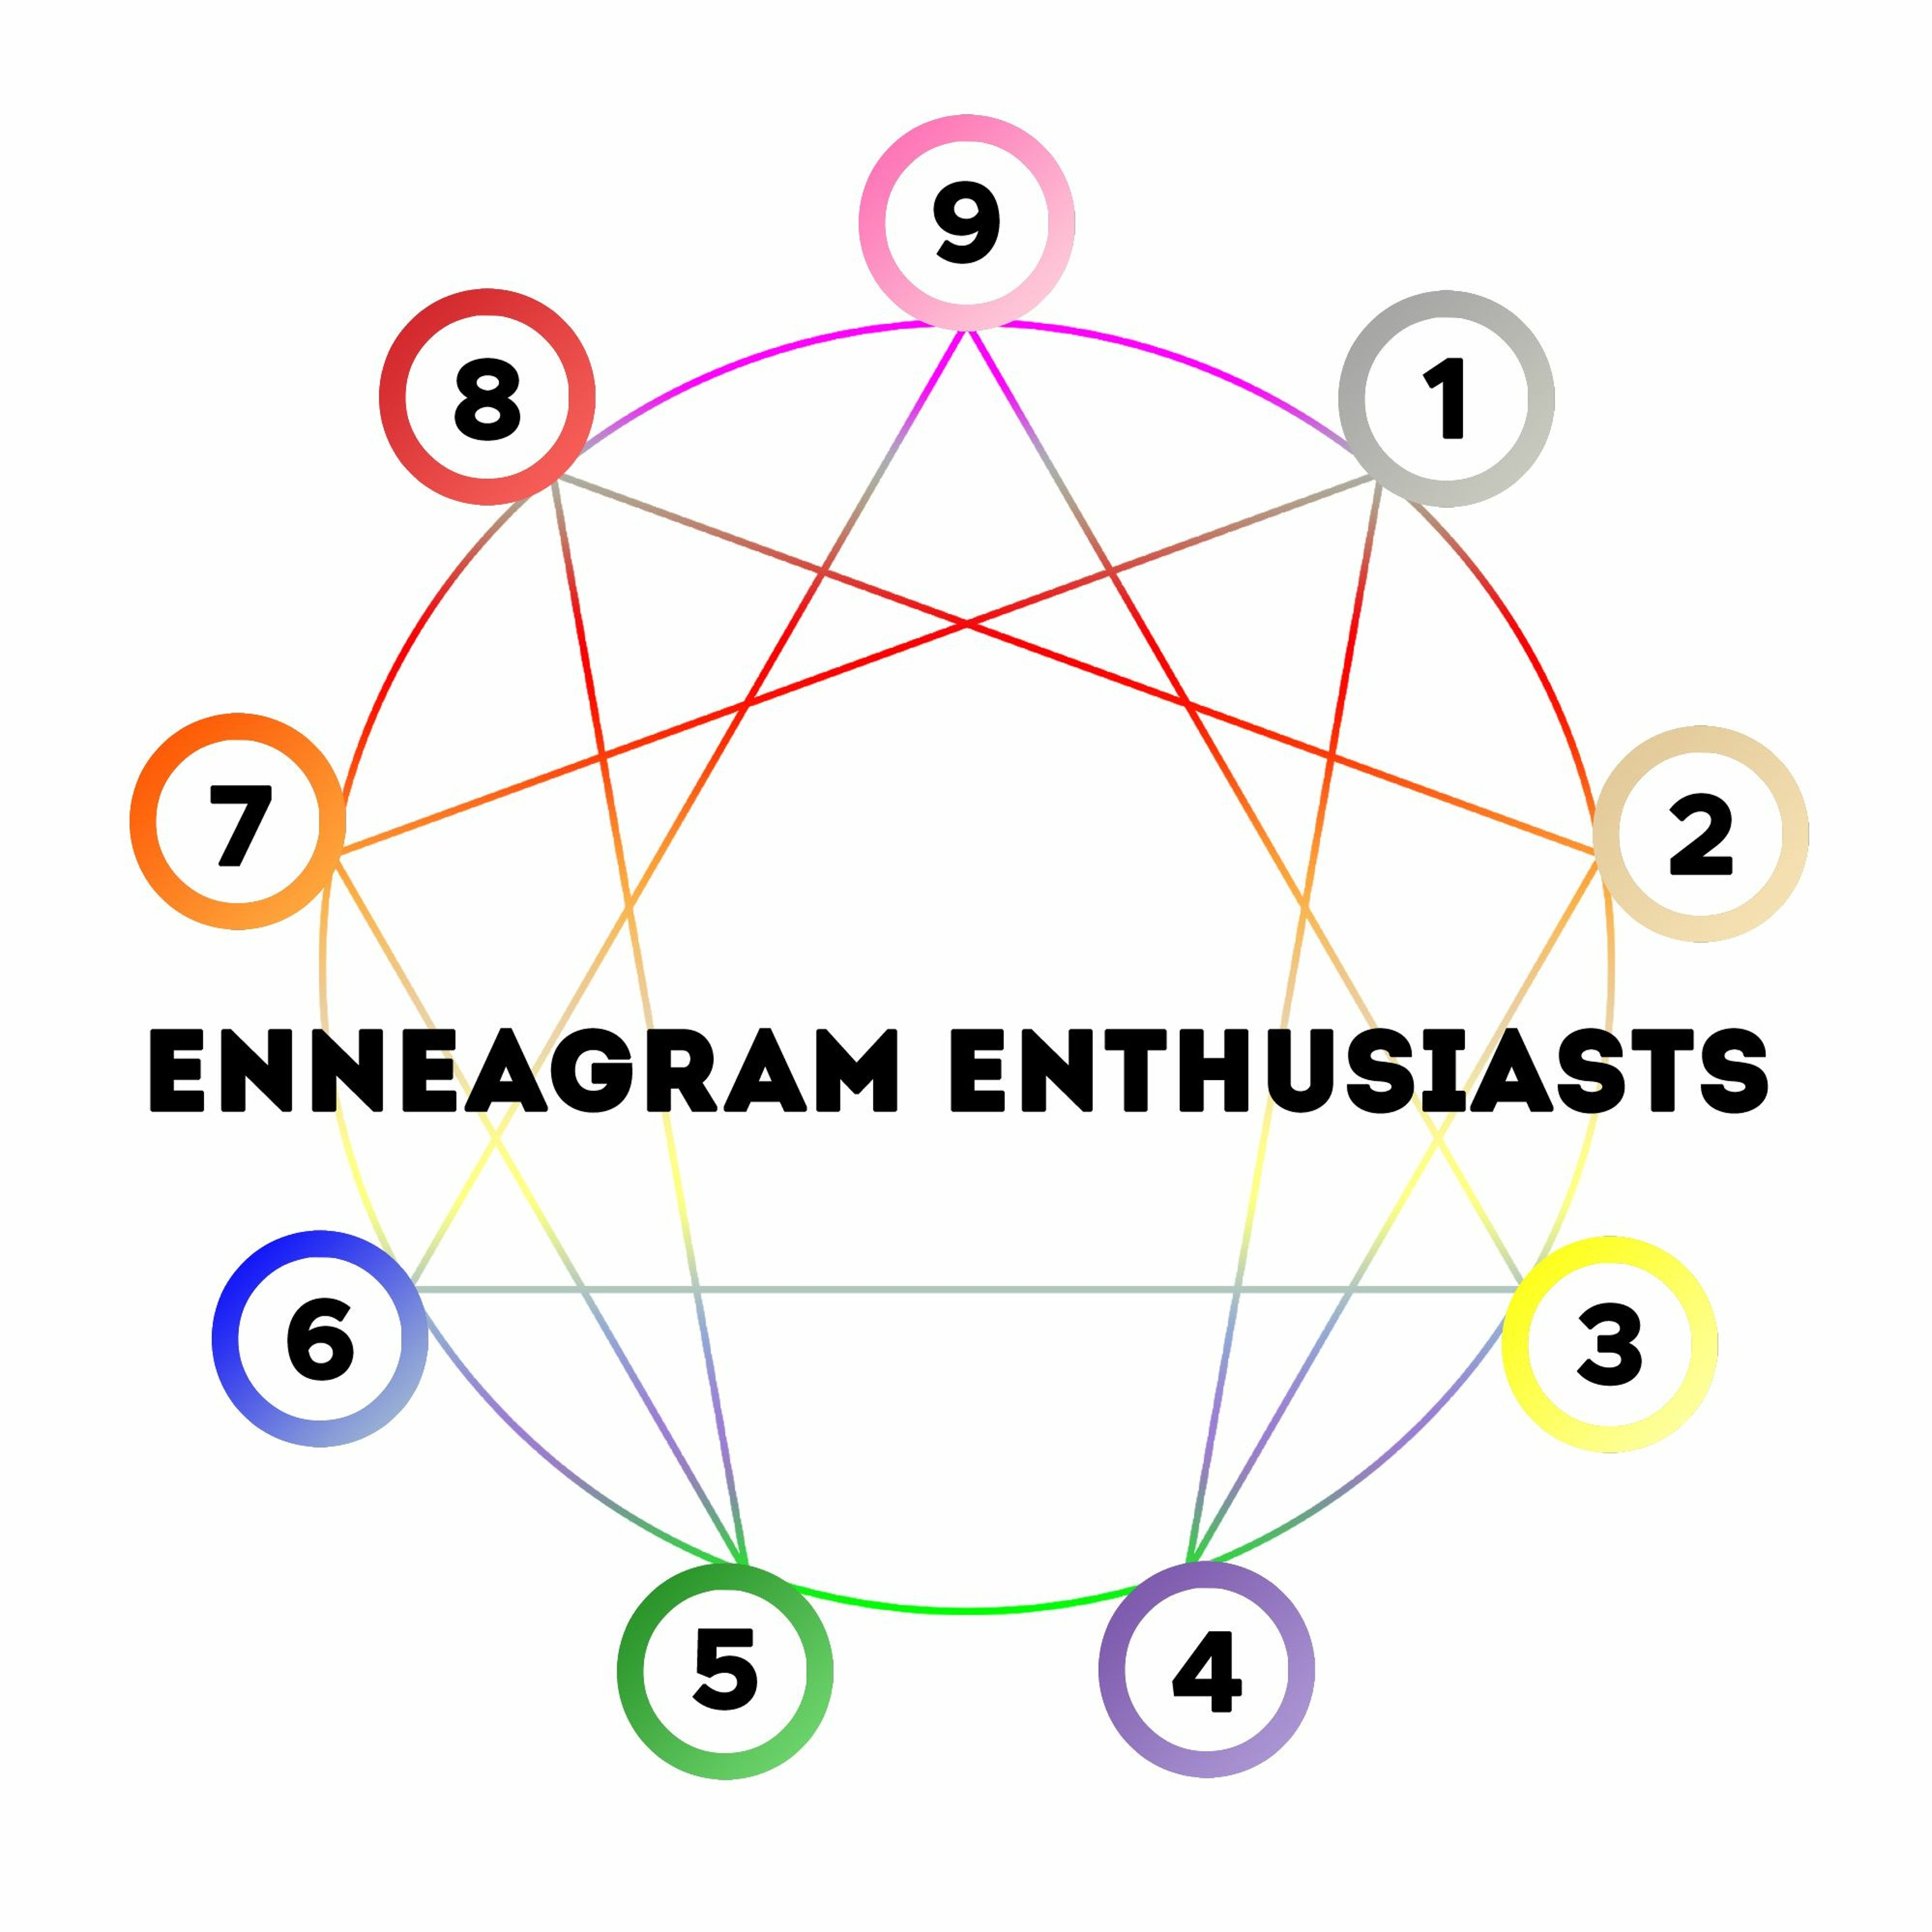 Episode 8 - How The Enneagram Transforms Your Life - Part 2 With Lynette Lynn (Enneagram 8)